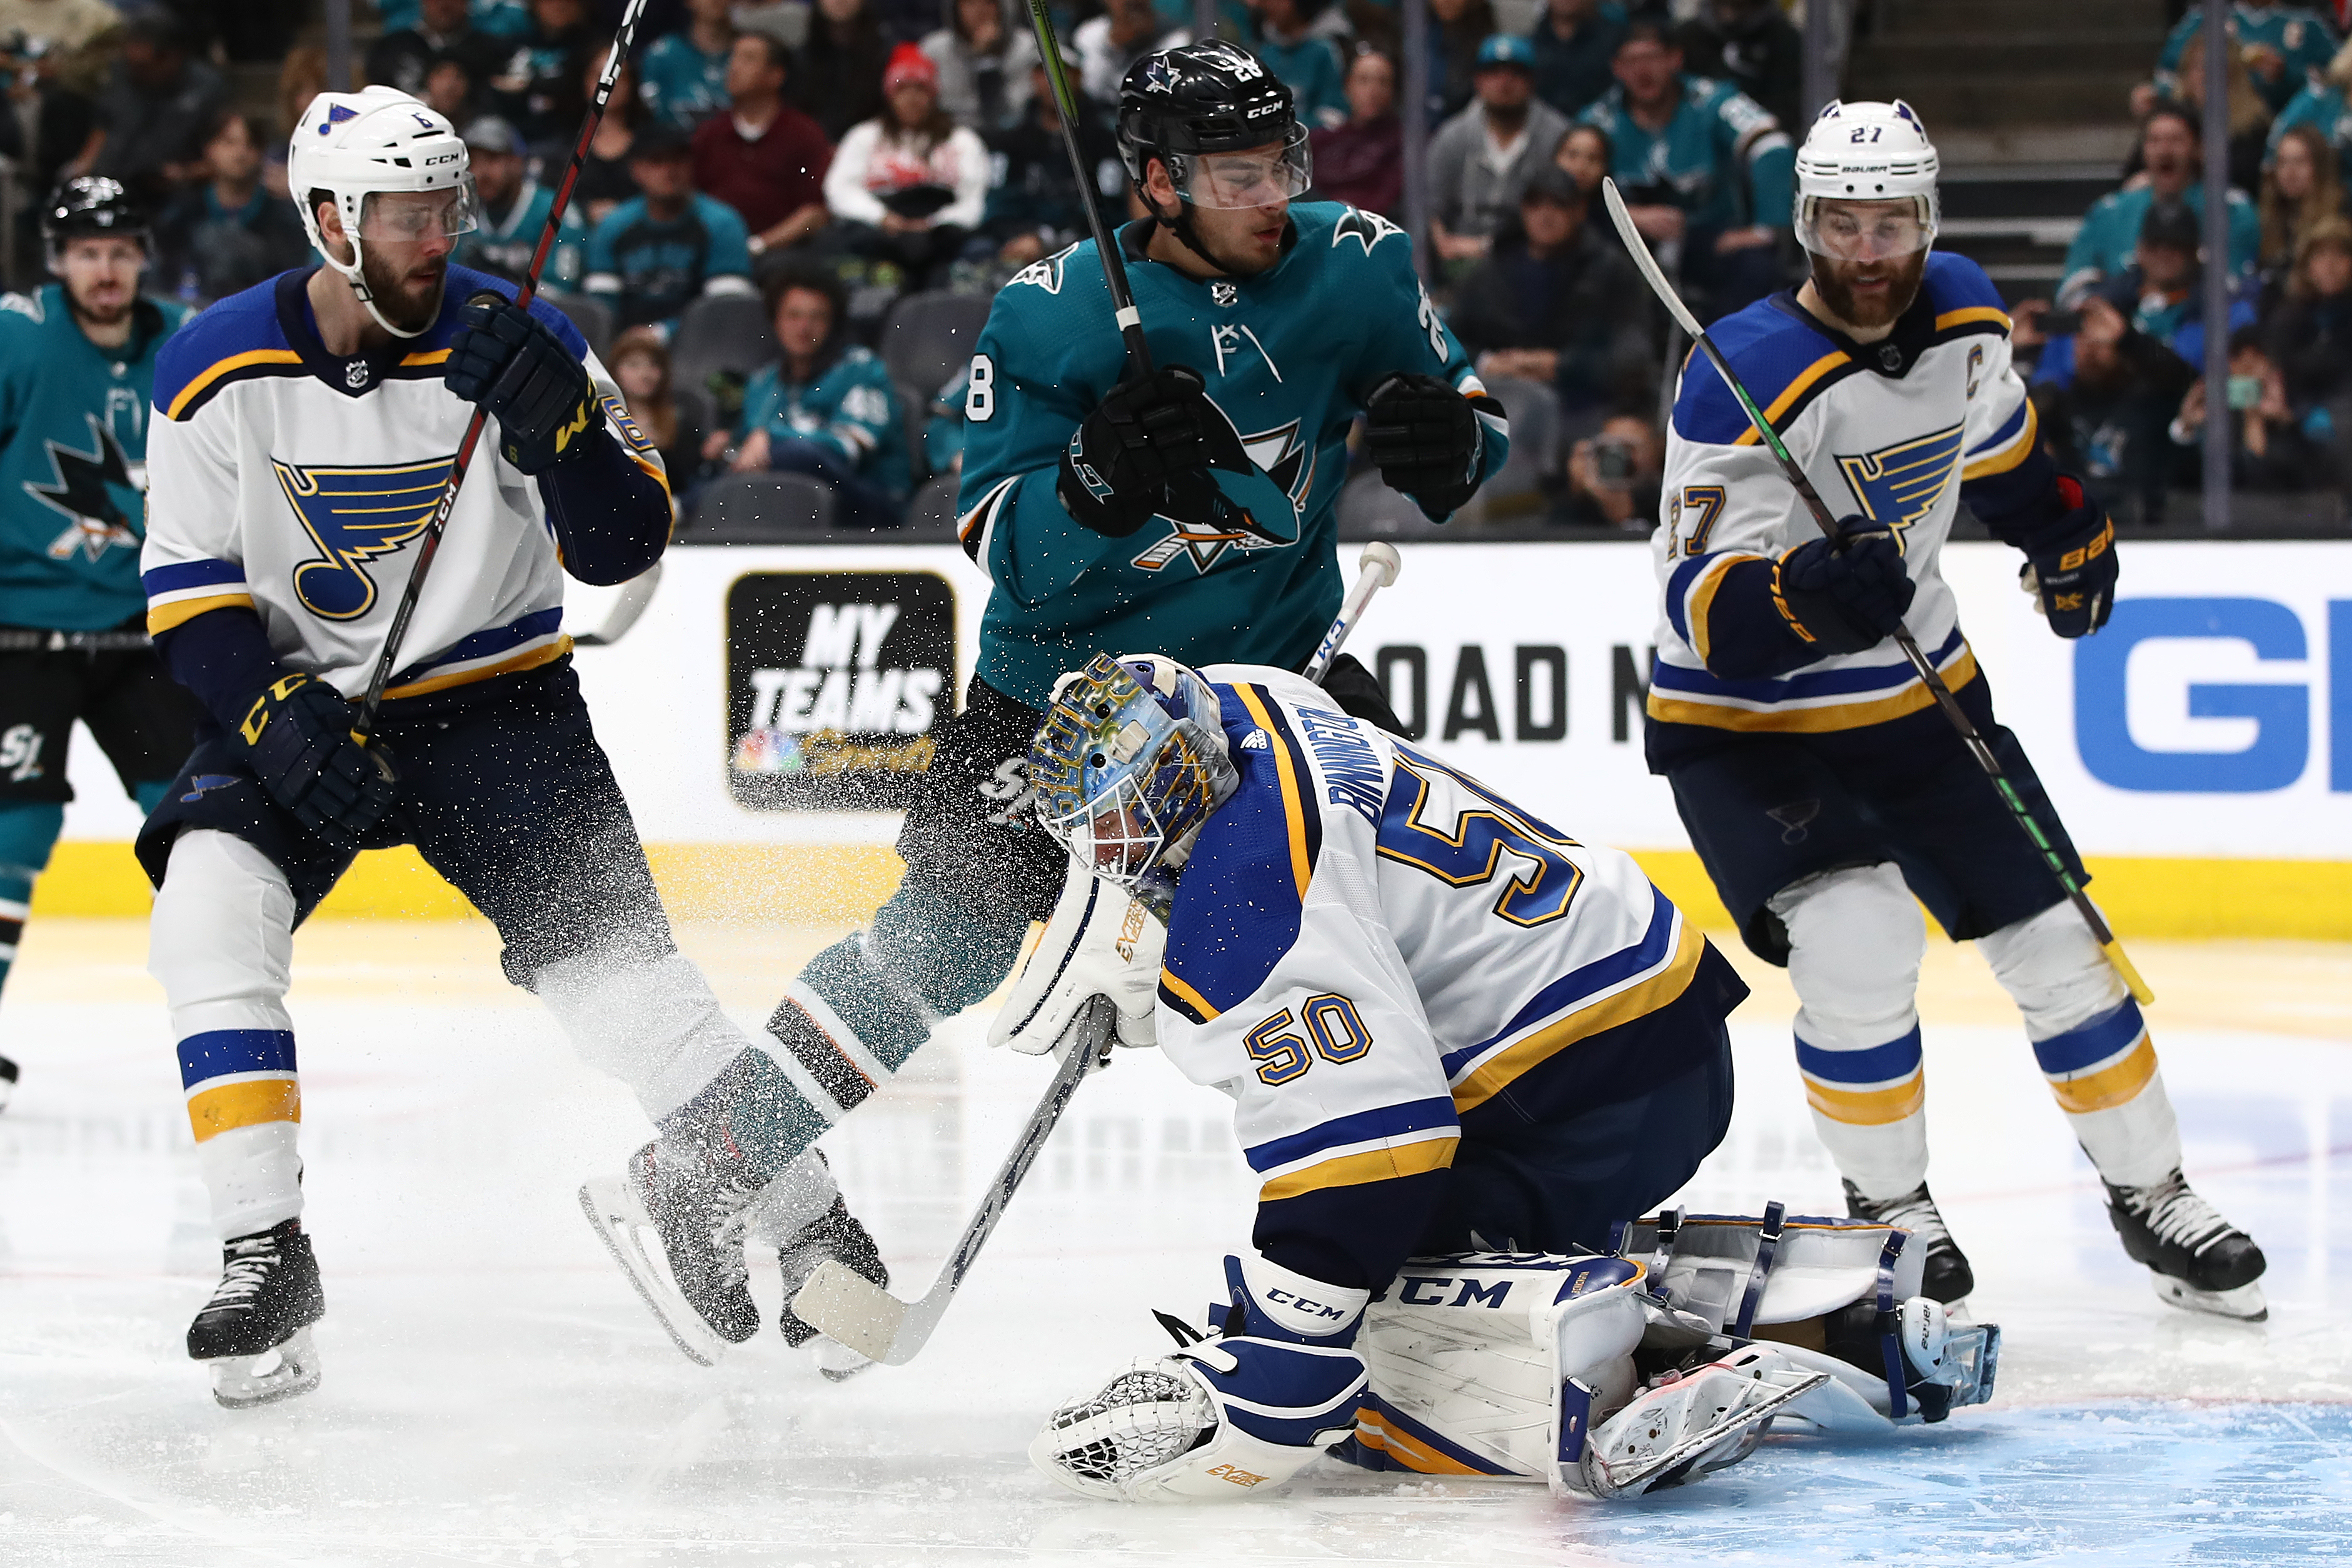 Jordan Binnington #50 of the St. Louis Blues makes a save in front of Timo Meier #28 of the San Jose Sharks in Game Five of the Western Conference Final during the 2019 NHL Stanley Cup Playoffs at SAP Center on May 19, 2019 in San Jose, California.